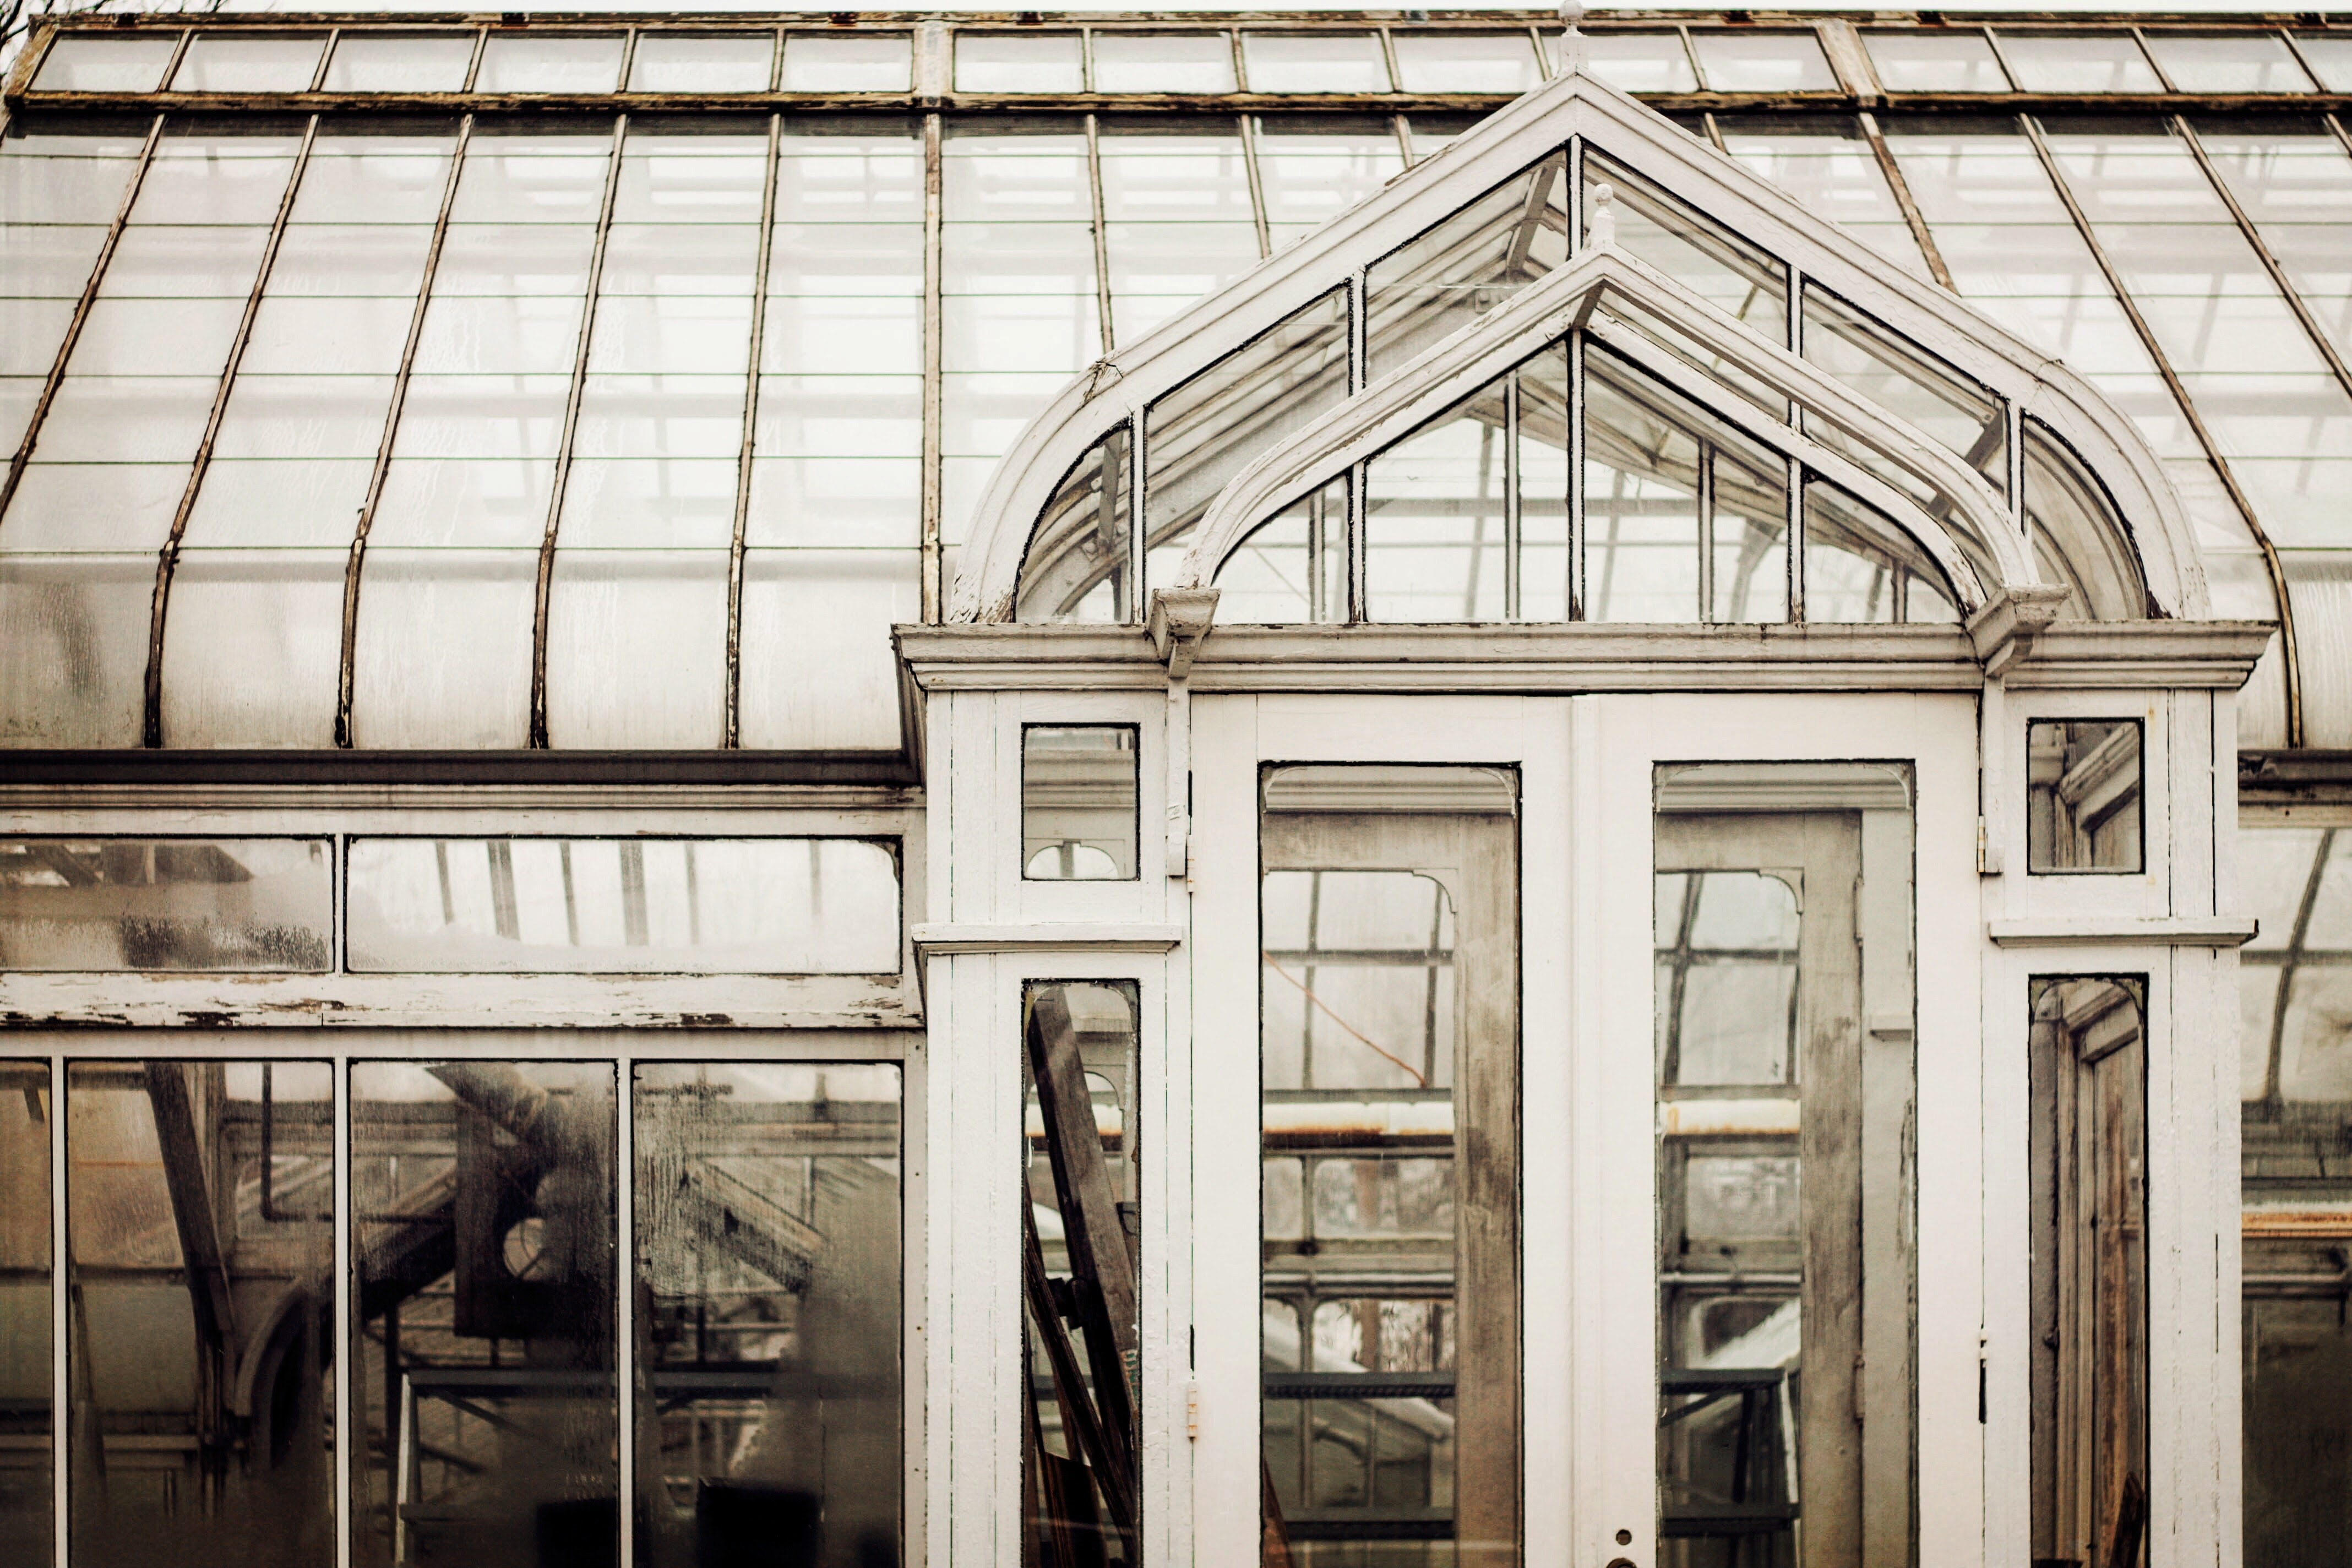 A modern glass greenhouse building full of glass windows in Holland.